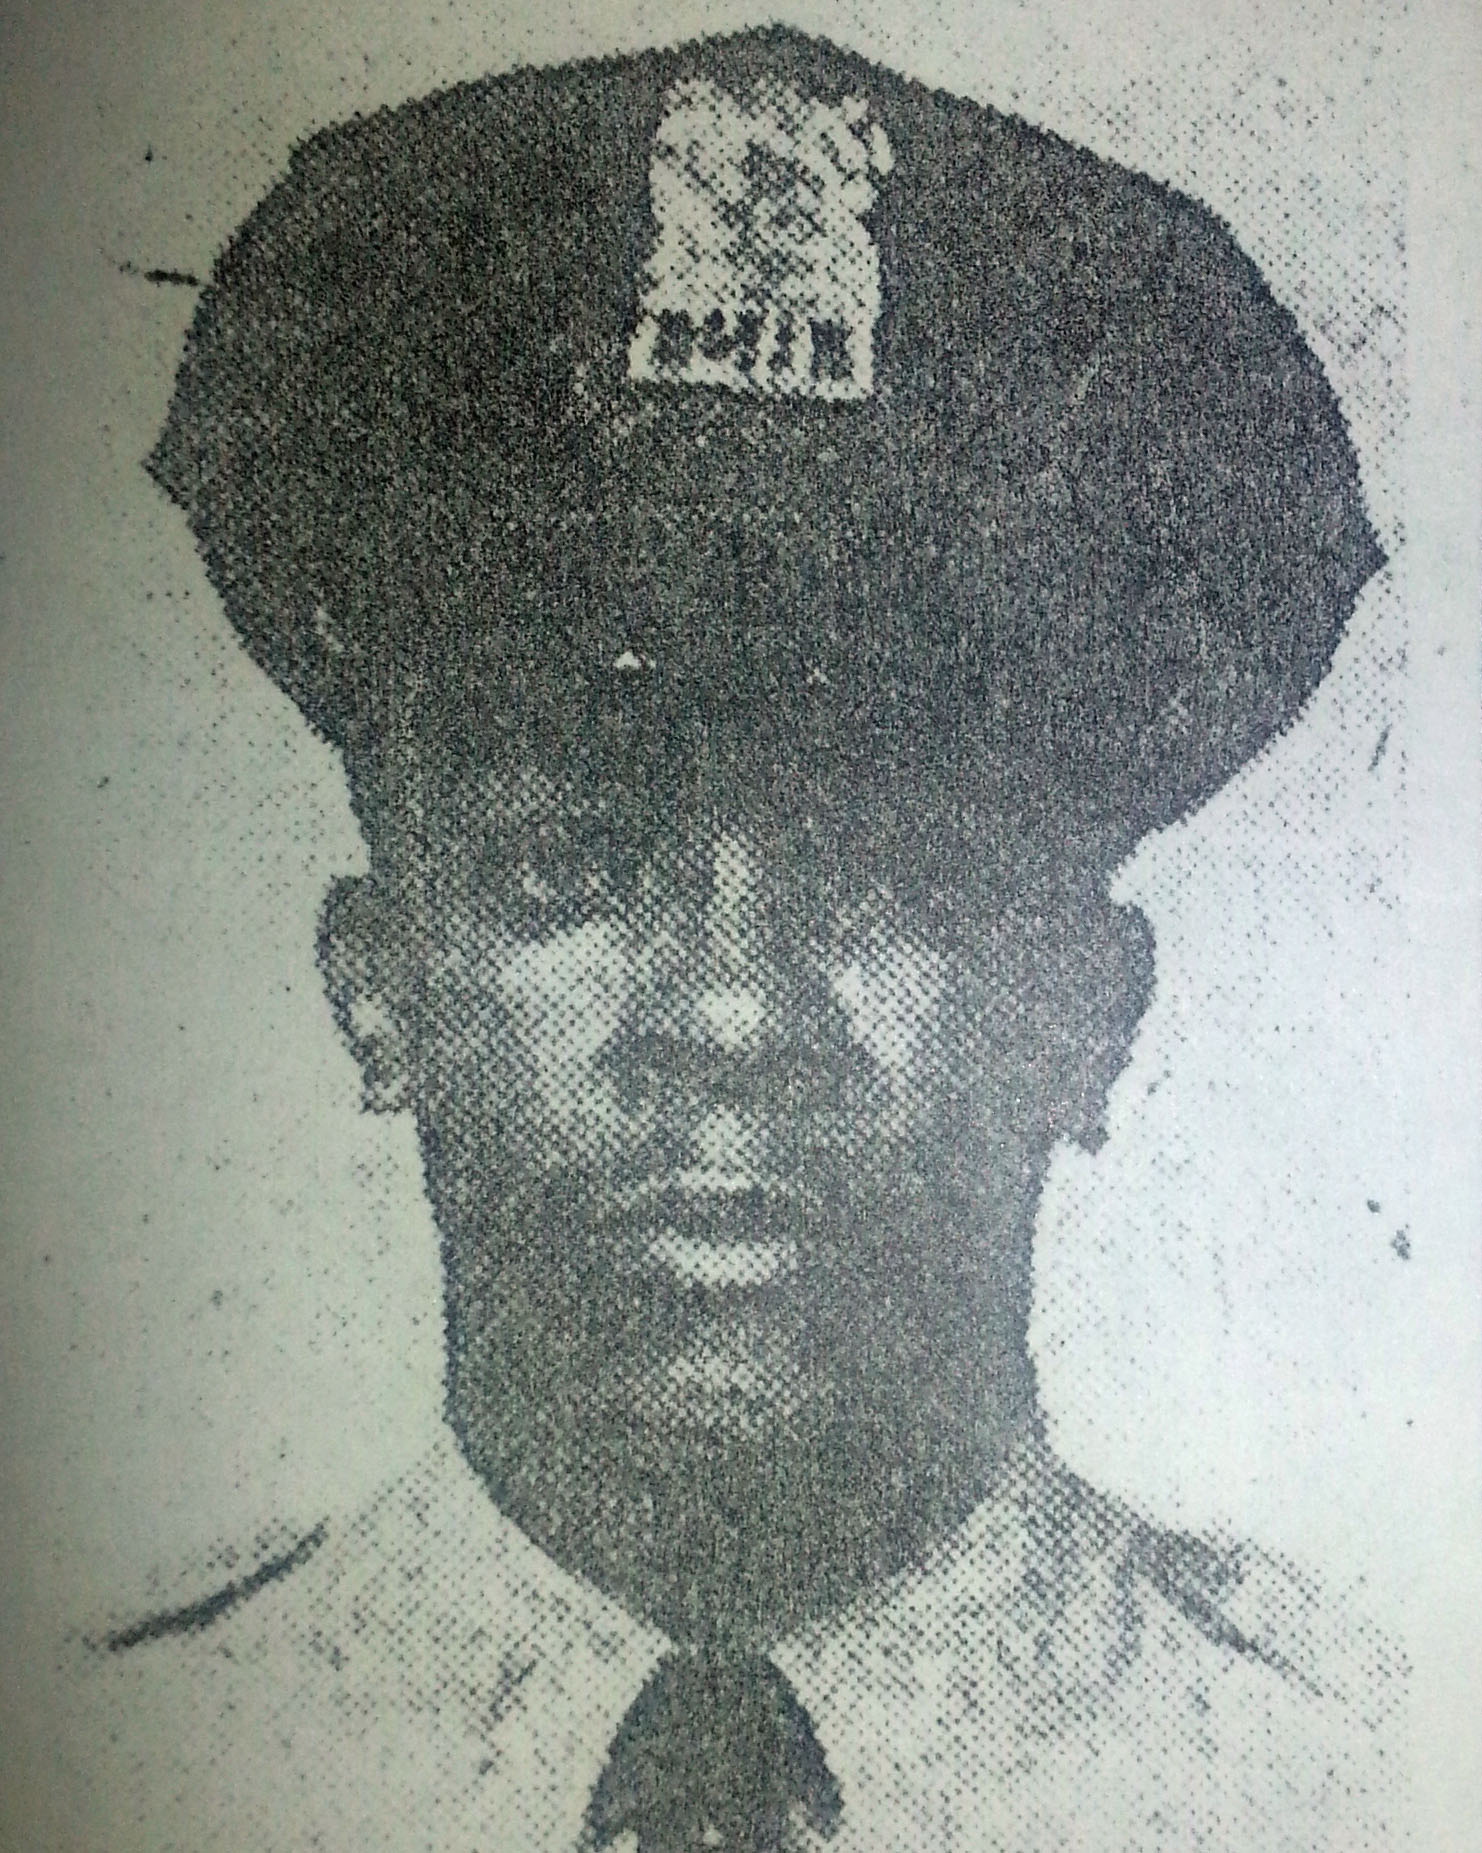 Patrolman Percival A. Johnson, Sr. | New Orleans Police Department, Louisiana